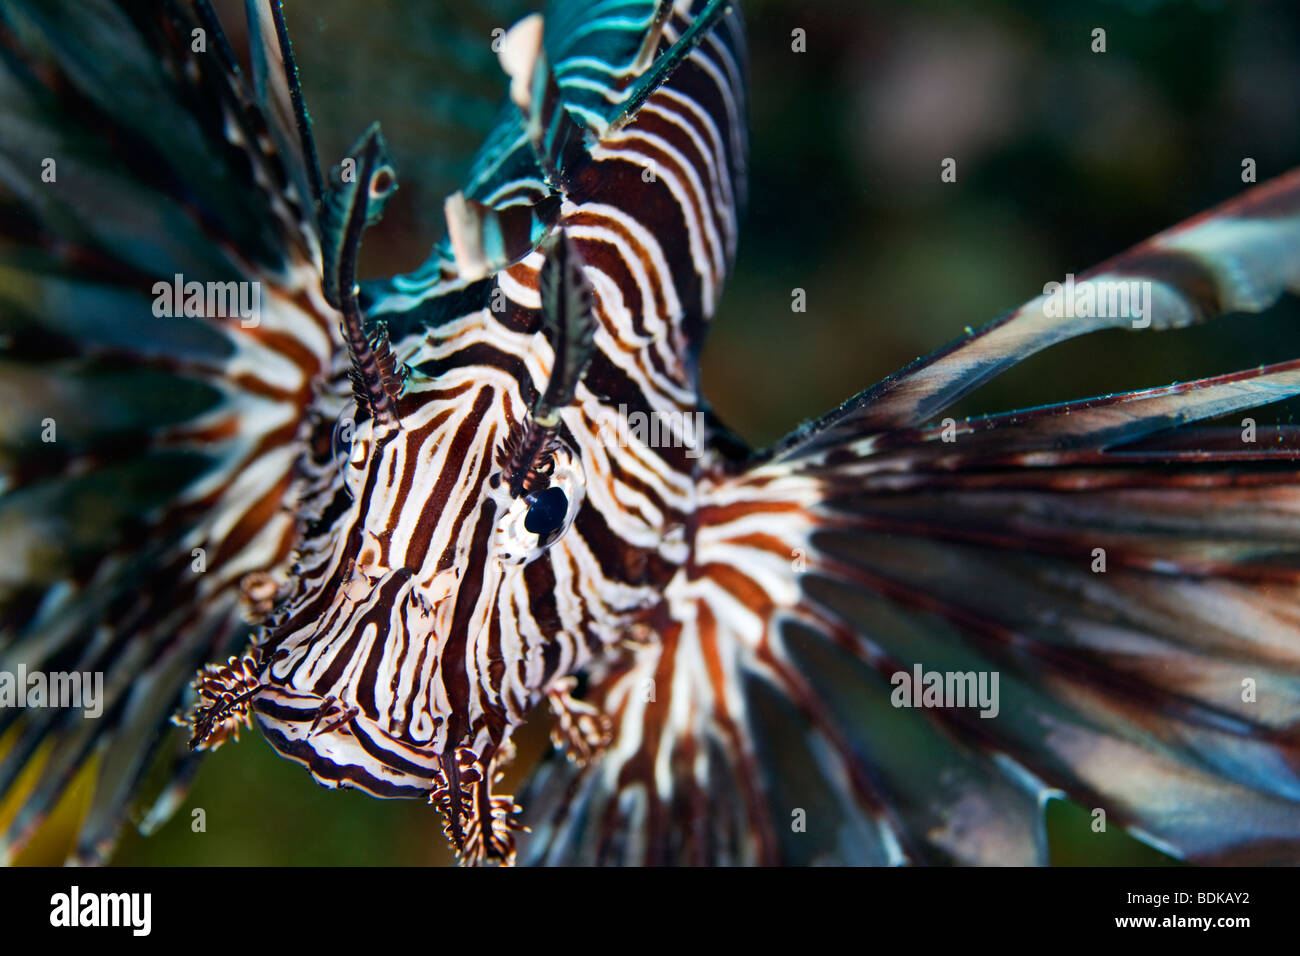 Lionfish Pterois volitans, a scorpionfish lies in ambush waiting for prey in Mione Bay, Papua New Guinea - Stock Image